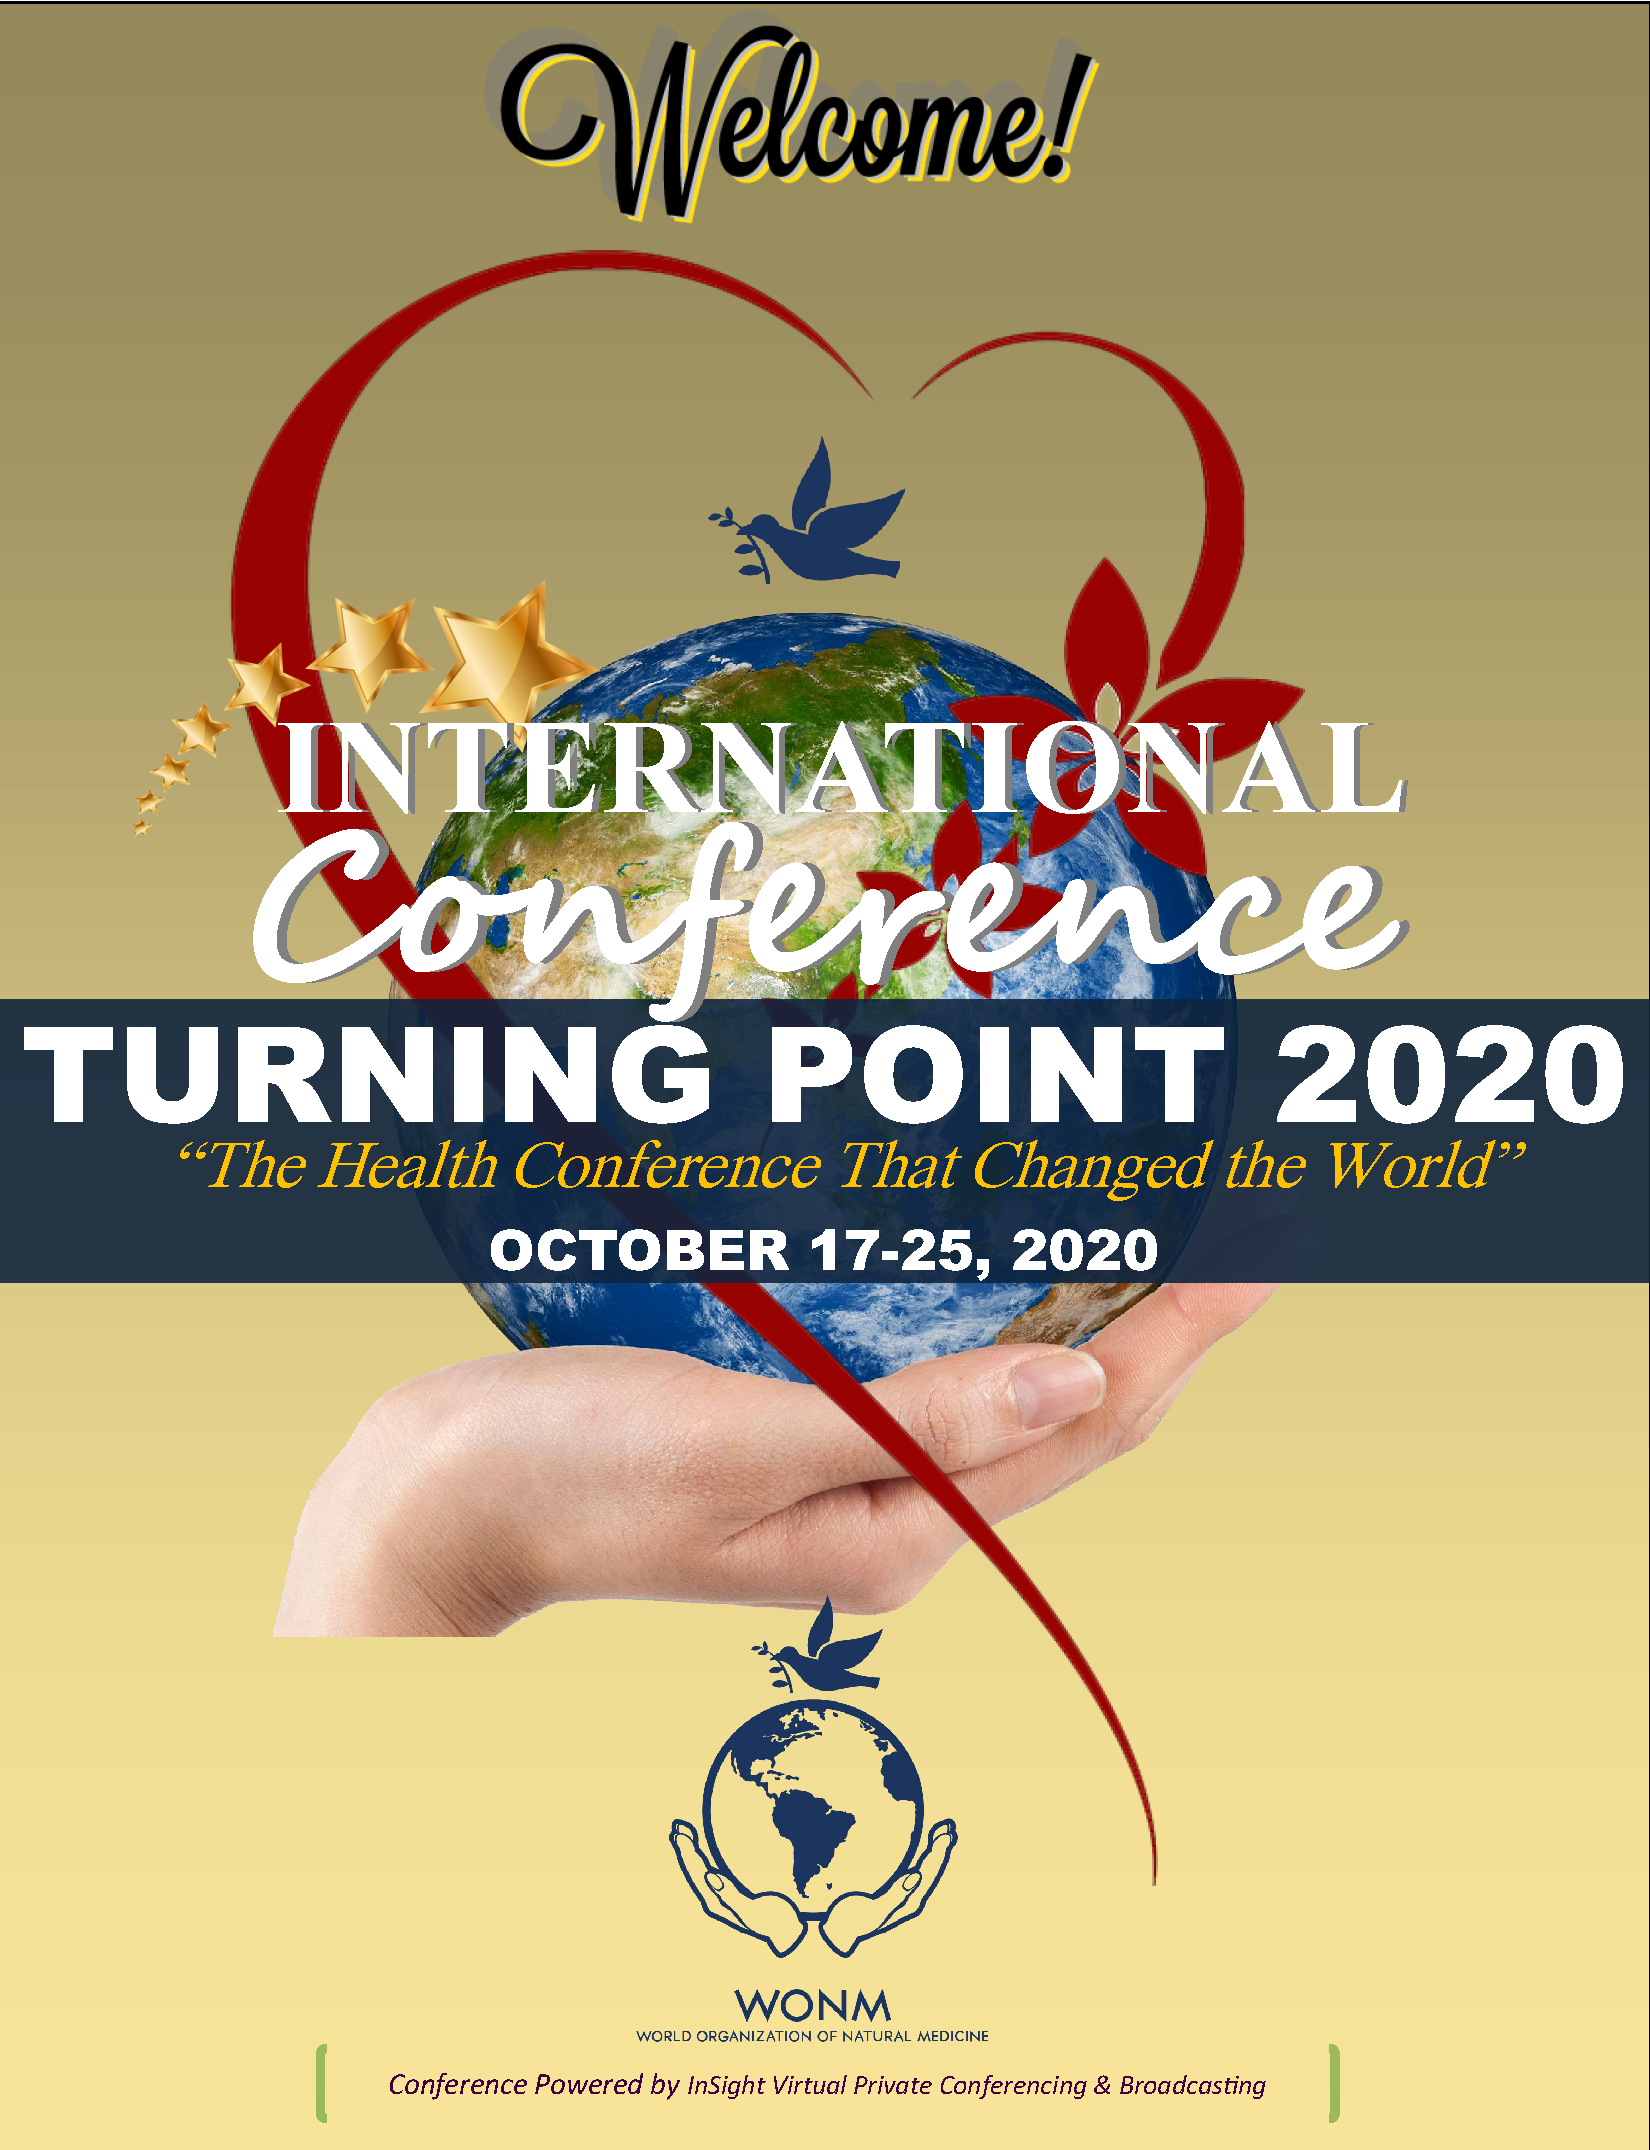 Turning Point 2020 Conference